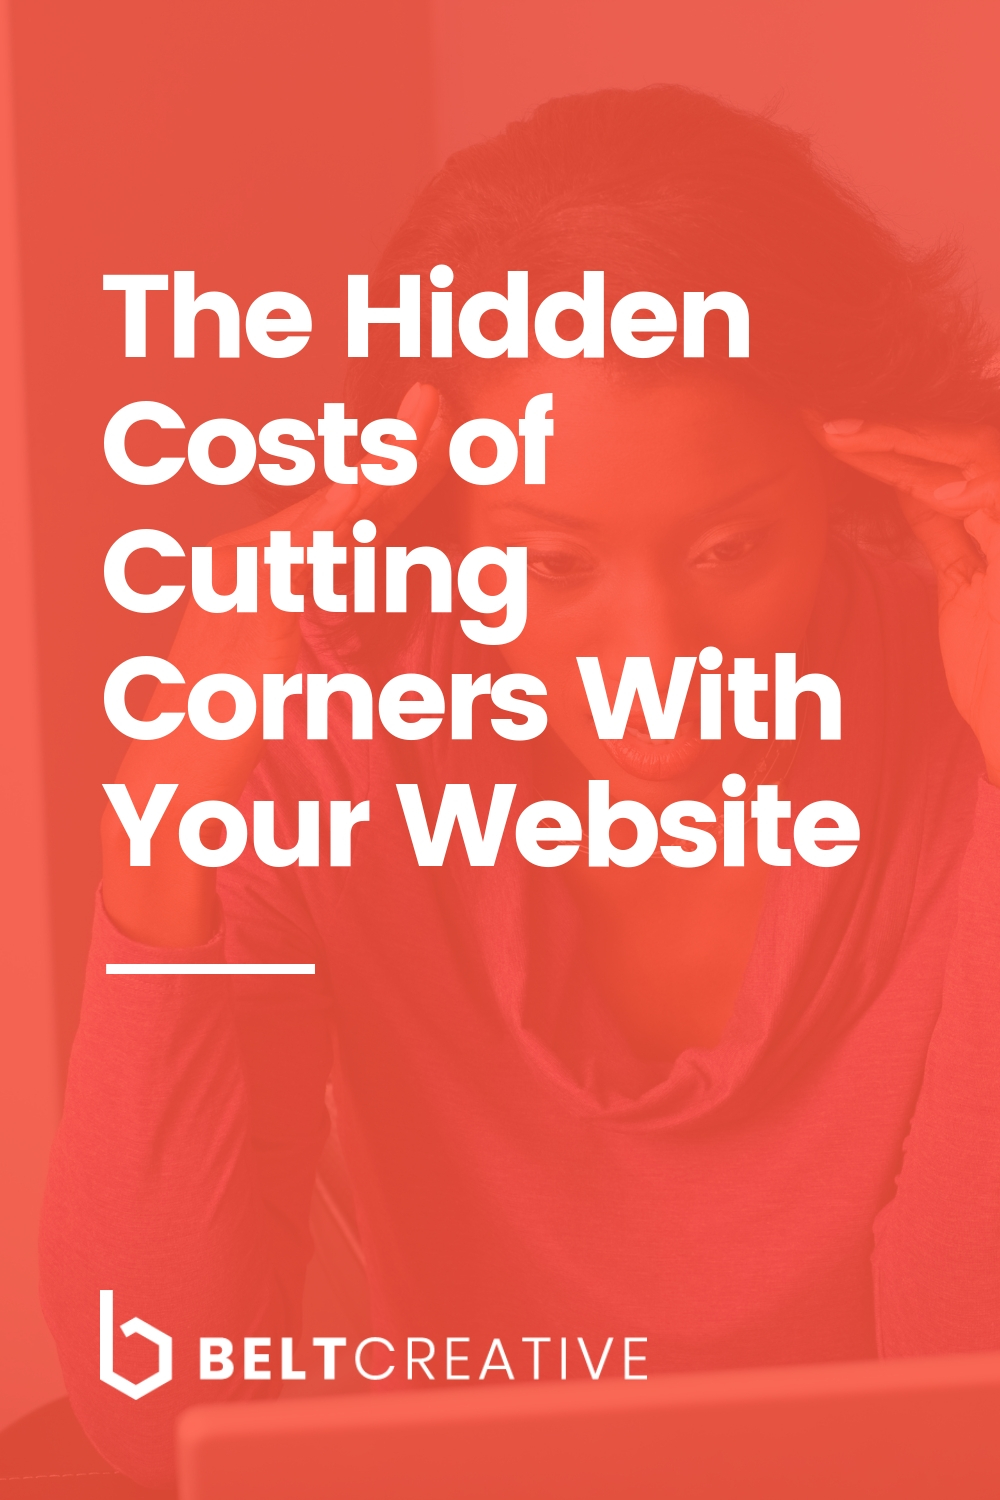 The Hidden Costs of Cutting Corners With Your Website.jpg